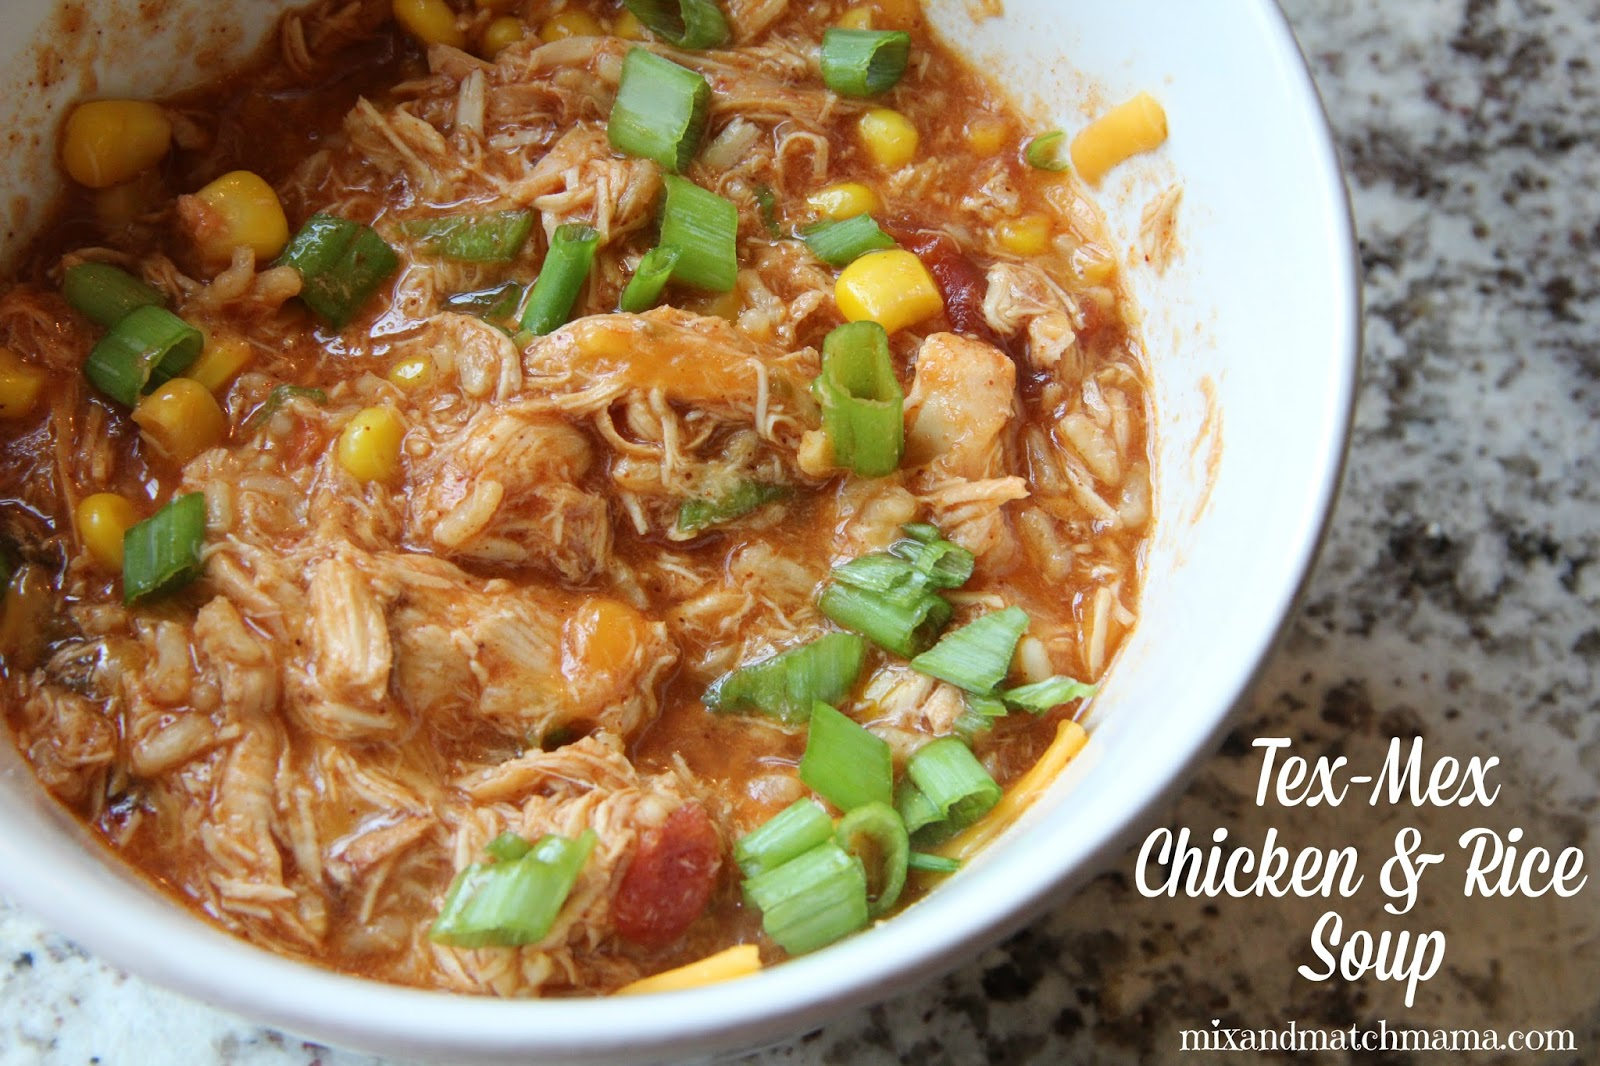 Mix and Match Mama: Dinner Tonight: Tex-Mex Chicken and Rice Soup